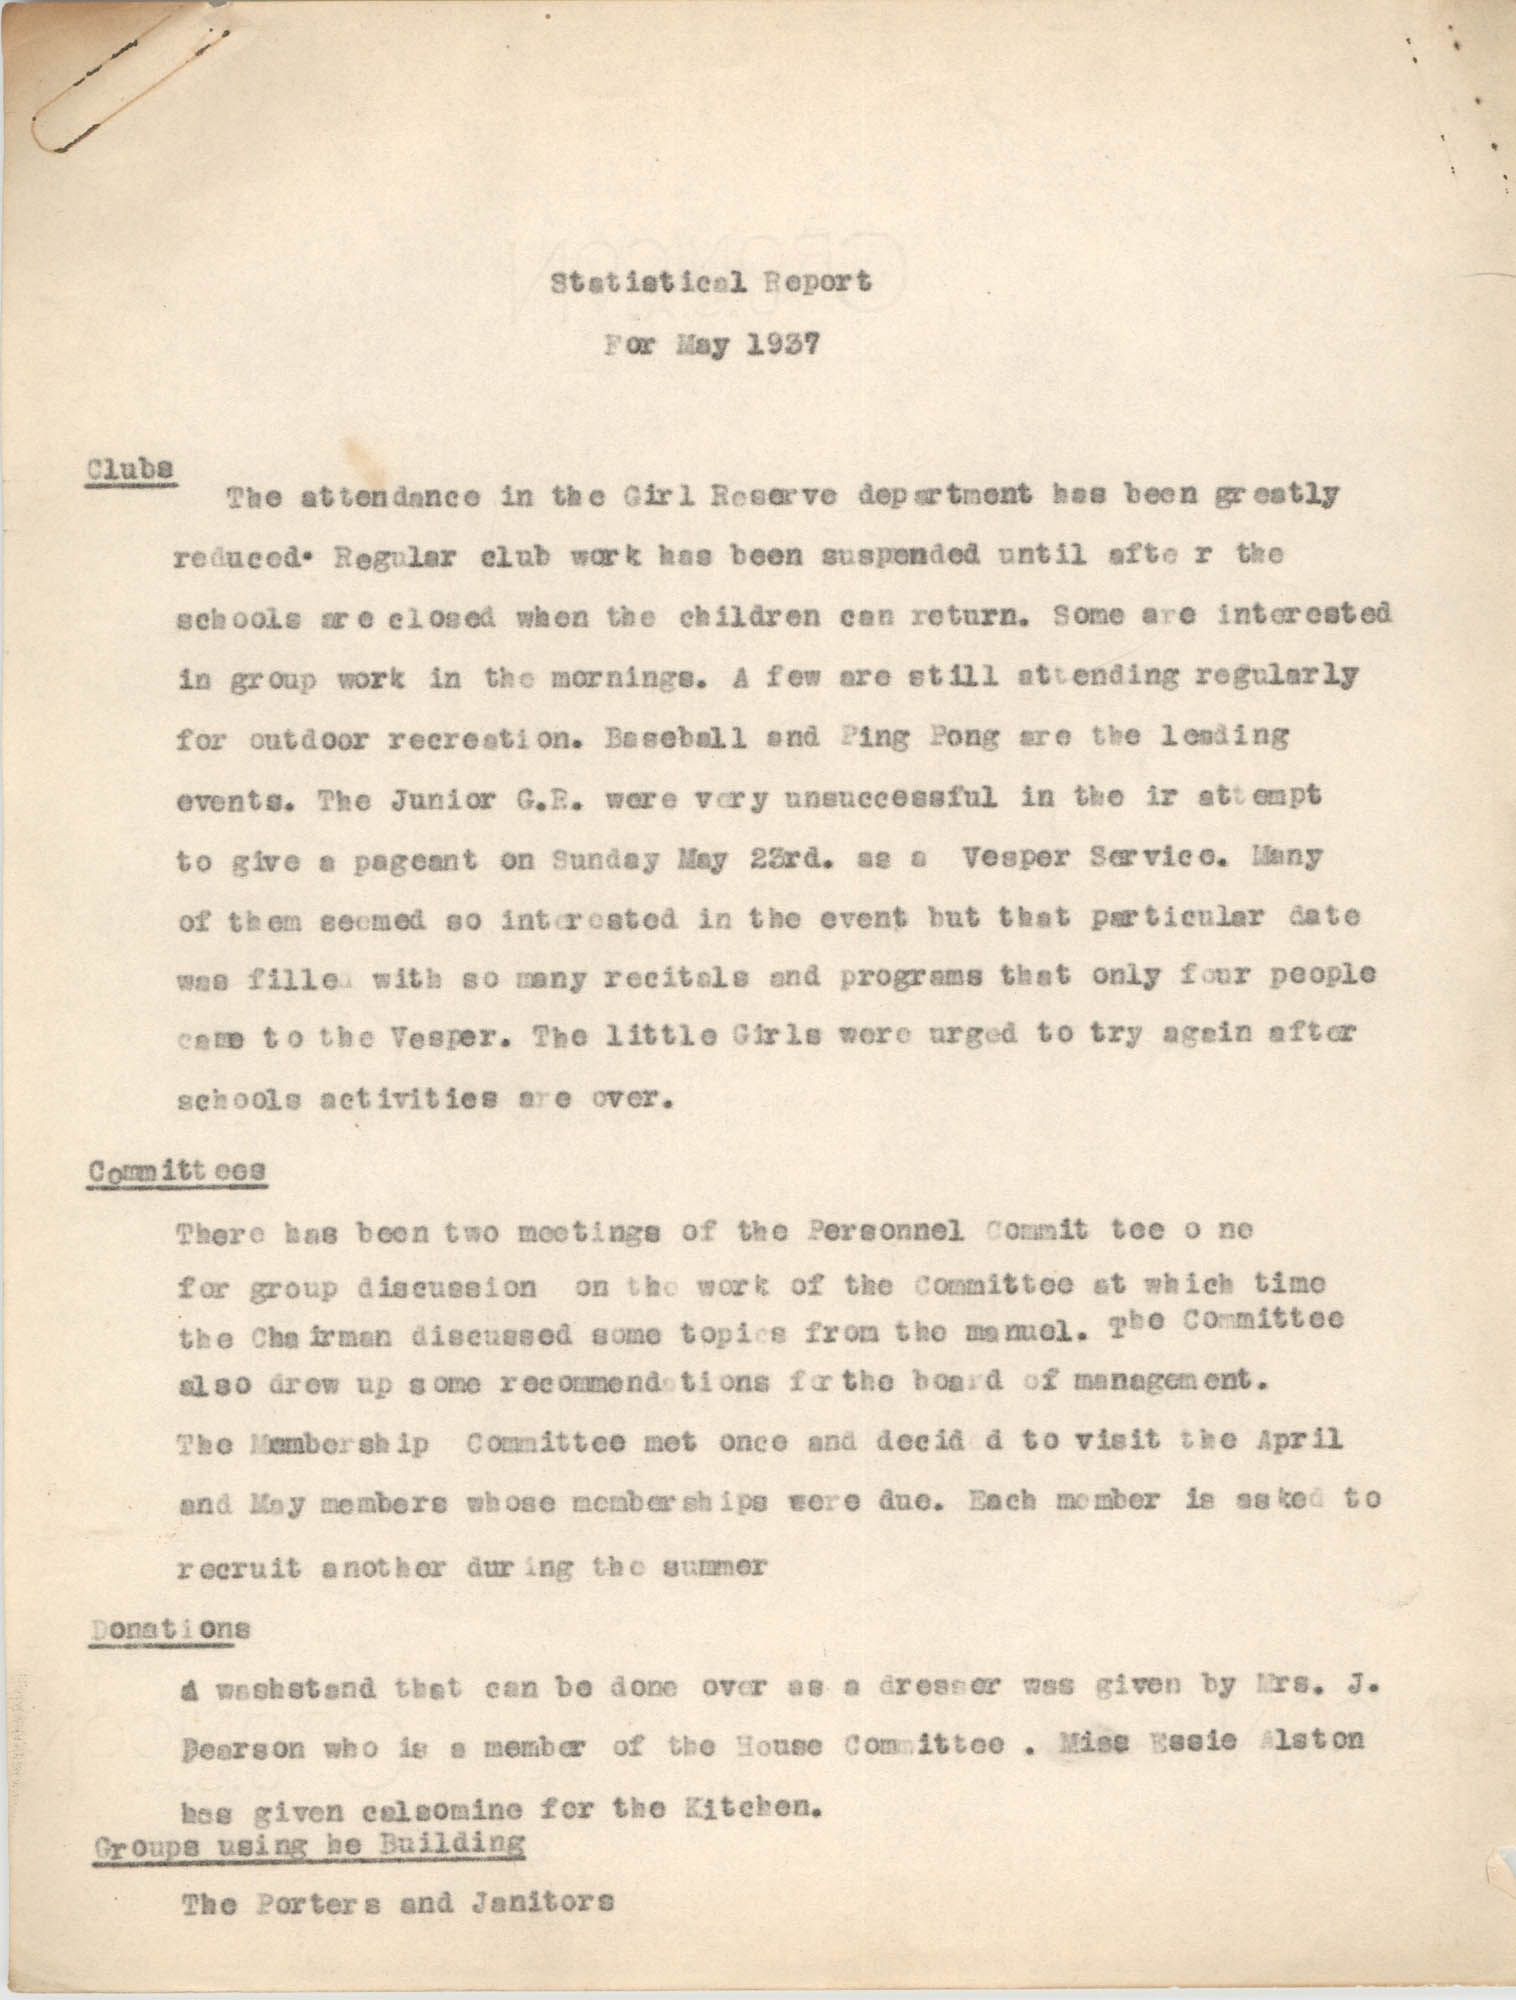 Statistical Report of the Coming Street Y.W.C.A., May 1937